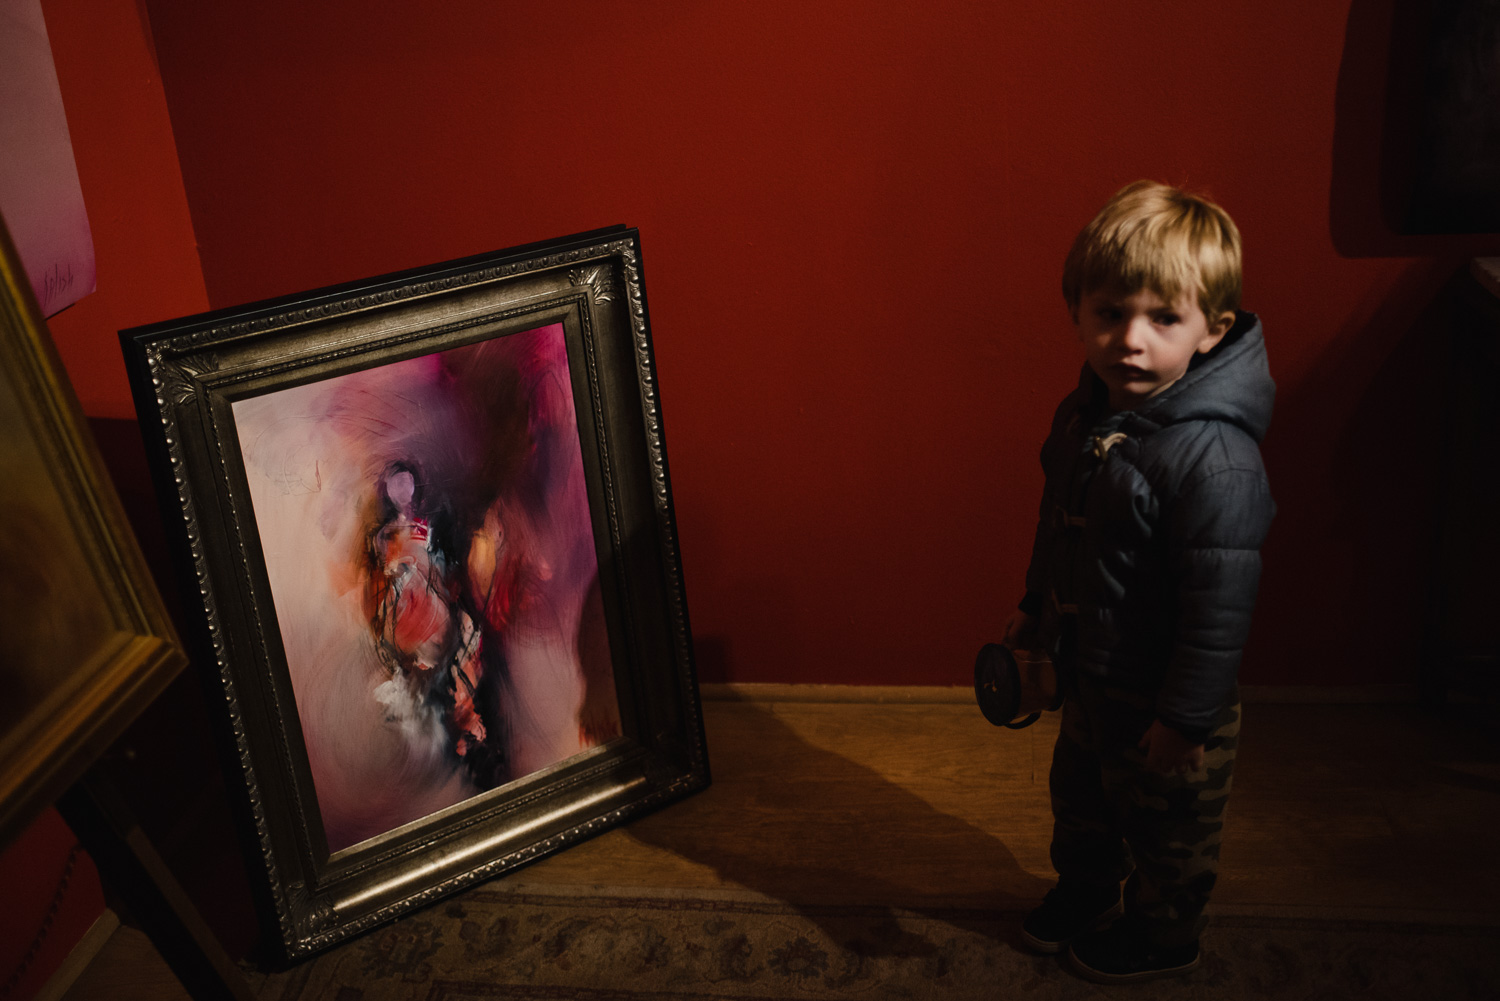 Little boy looking at a painting in an art gallery.